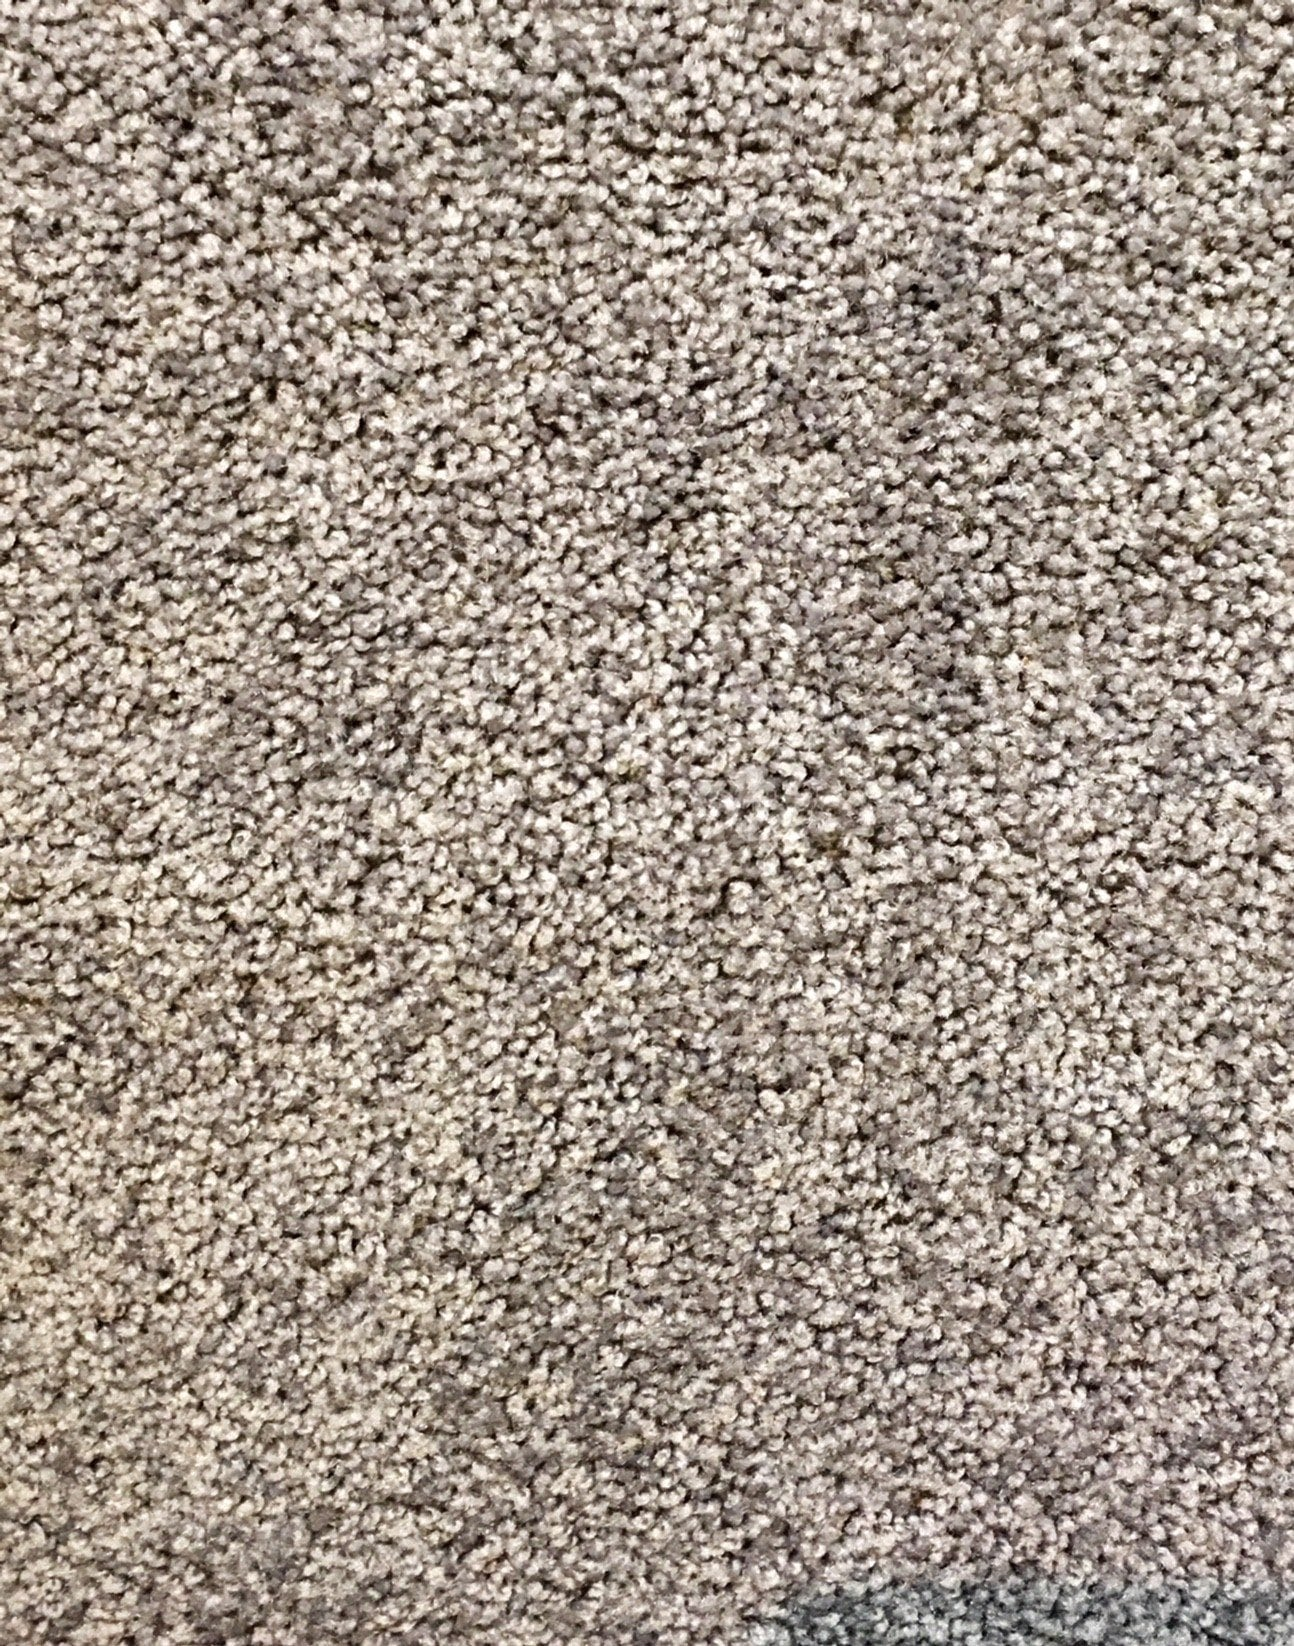 Mountain Moods 100 Nylon Carpet Stain Resistant 0420carpet